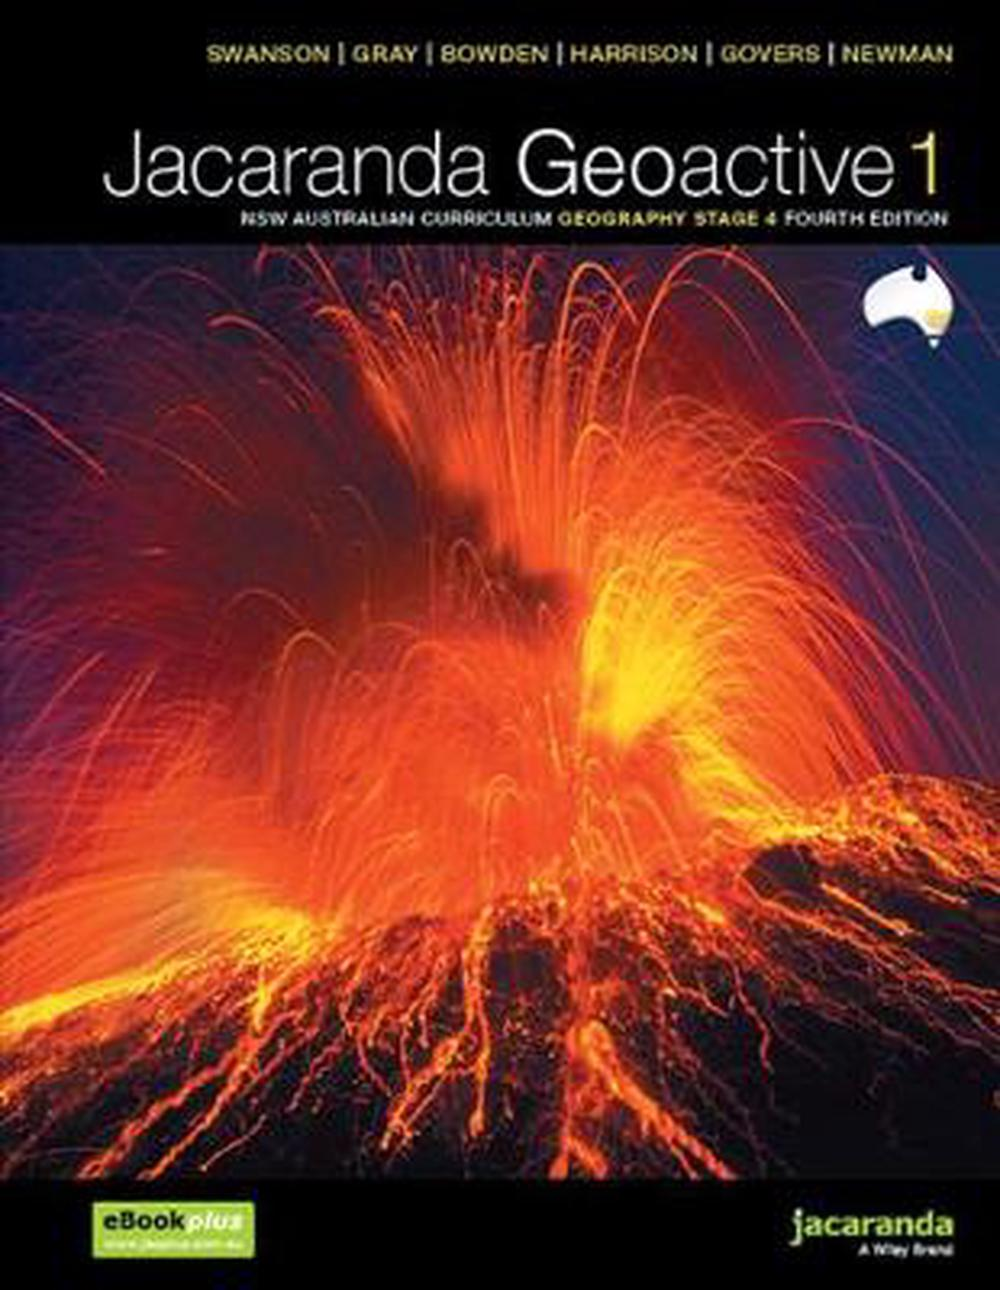 jacaranda geoactive 1 nsw australian curriculum geography stage 4 fourth edition ebookplus